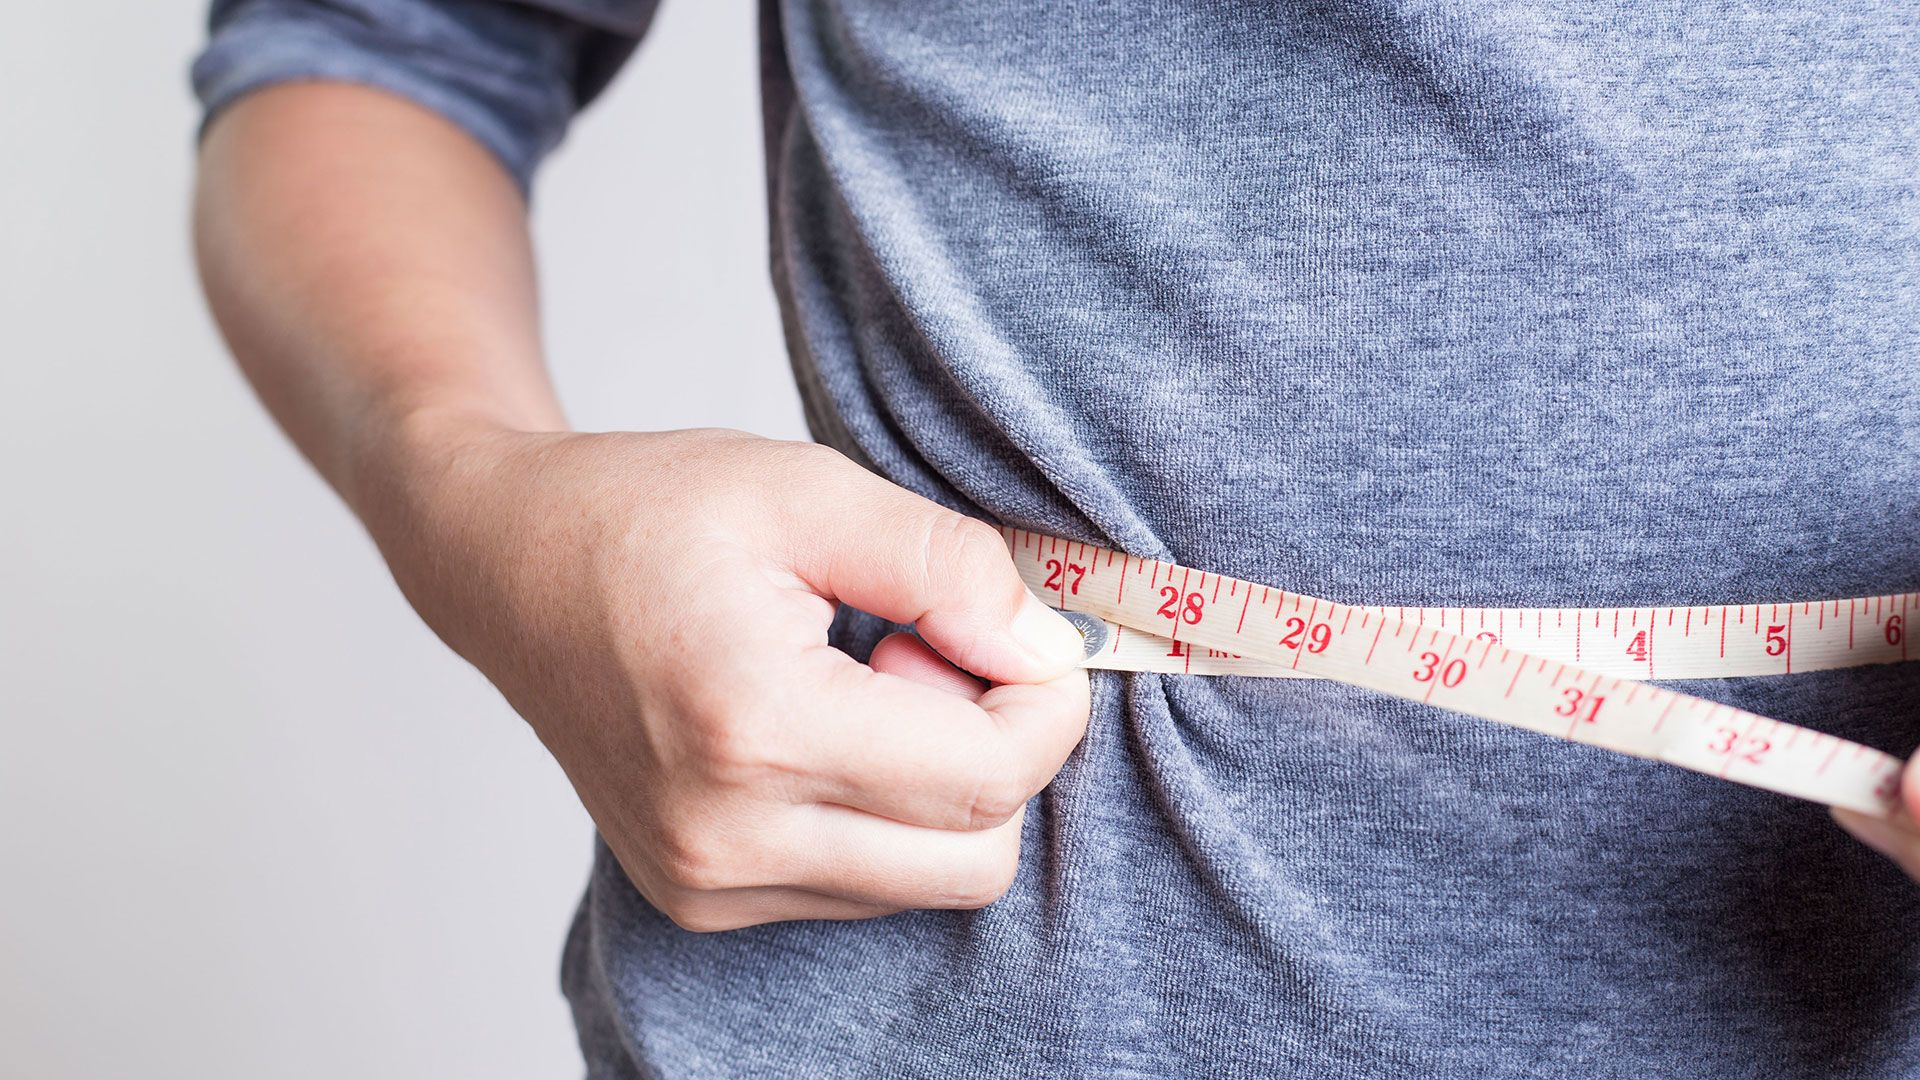 News: Can Weight Loss Reverse Type 2 Diabetes? A New Study Says Yes